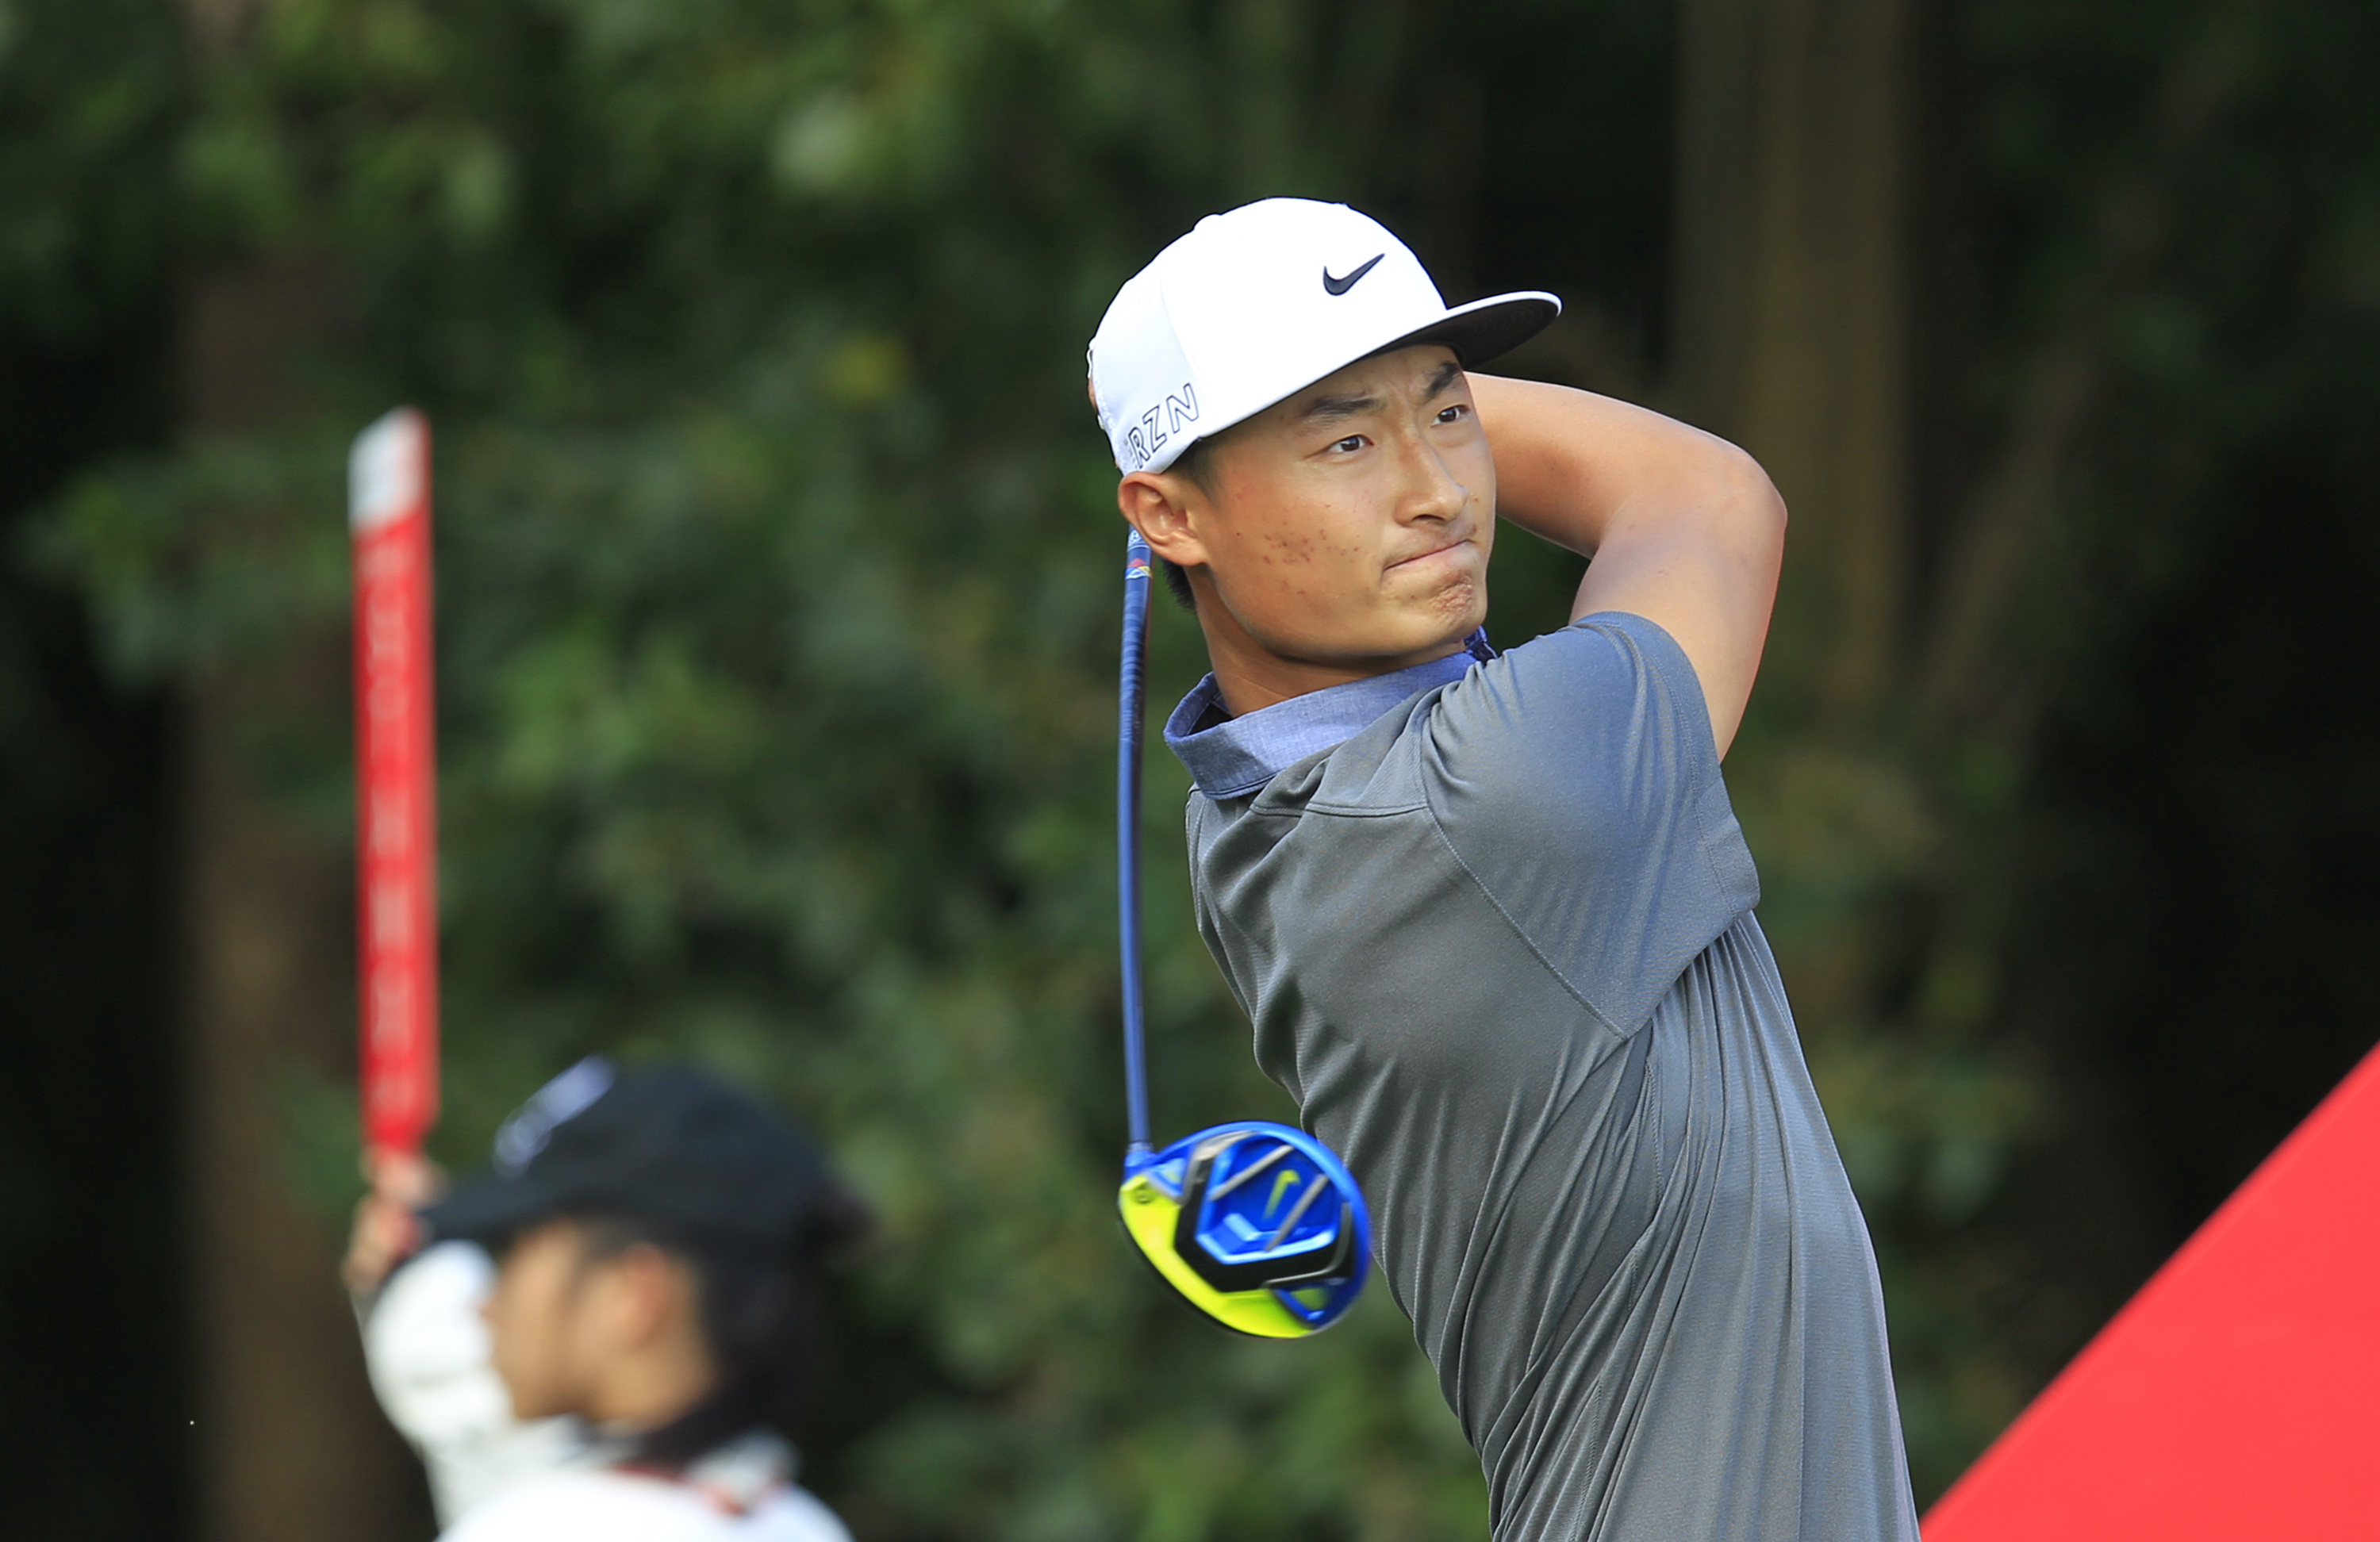 Li Haotong of China tees off on the 9th hole during the second round of the HSBC Champions golf tournament at the Sheshan International Golf Club in Shanghai, China Friday, Nov. 6, 2015. (AP Photo)